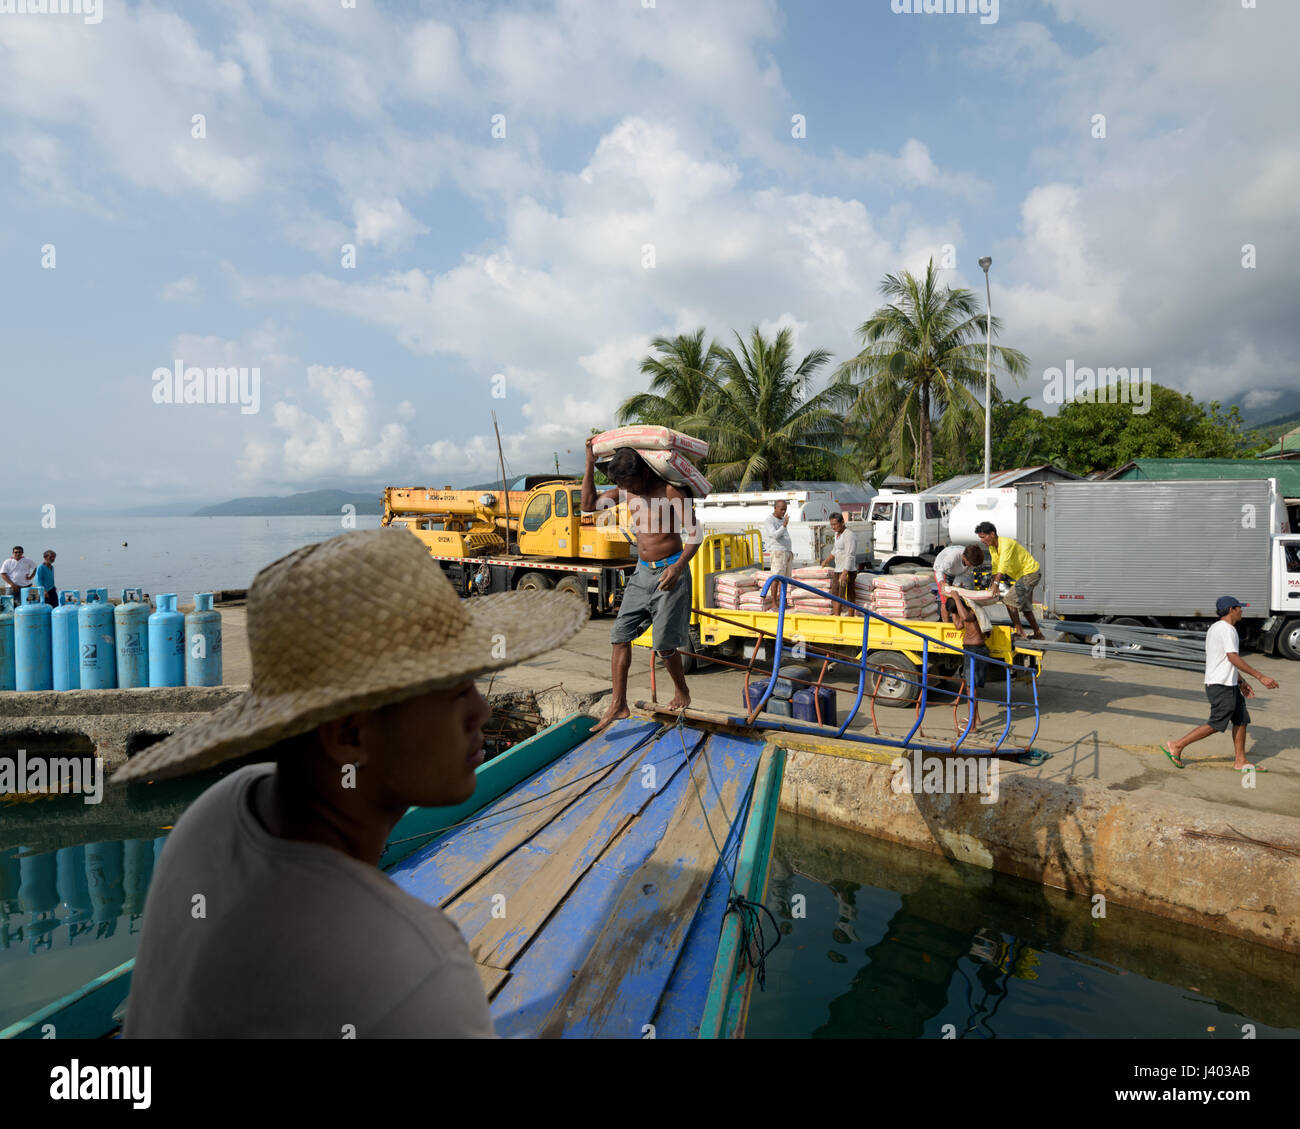 Polillo Island, Philippines - April 28, 2017: Filipino dockworkers loading a  Ferry at the Ungos Port in the Philippines. - Stock Image